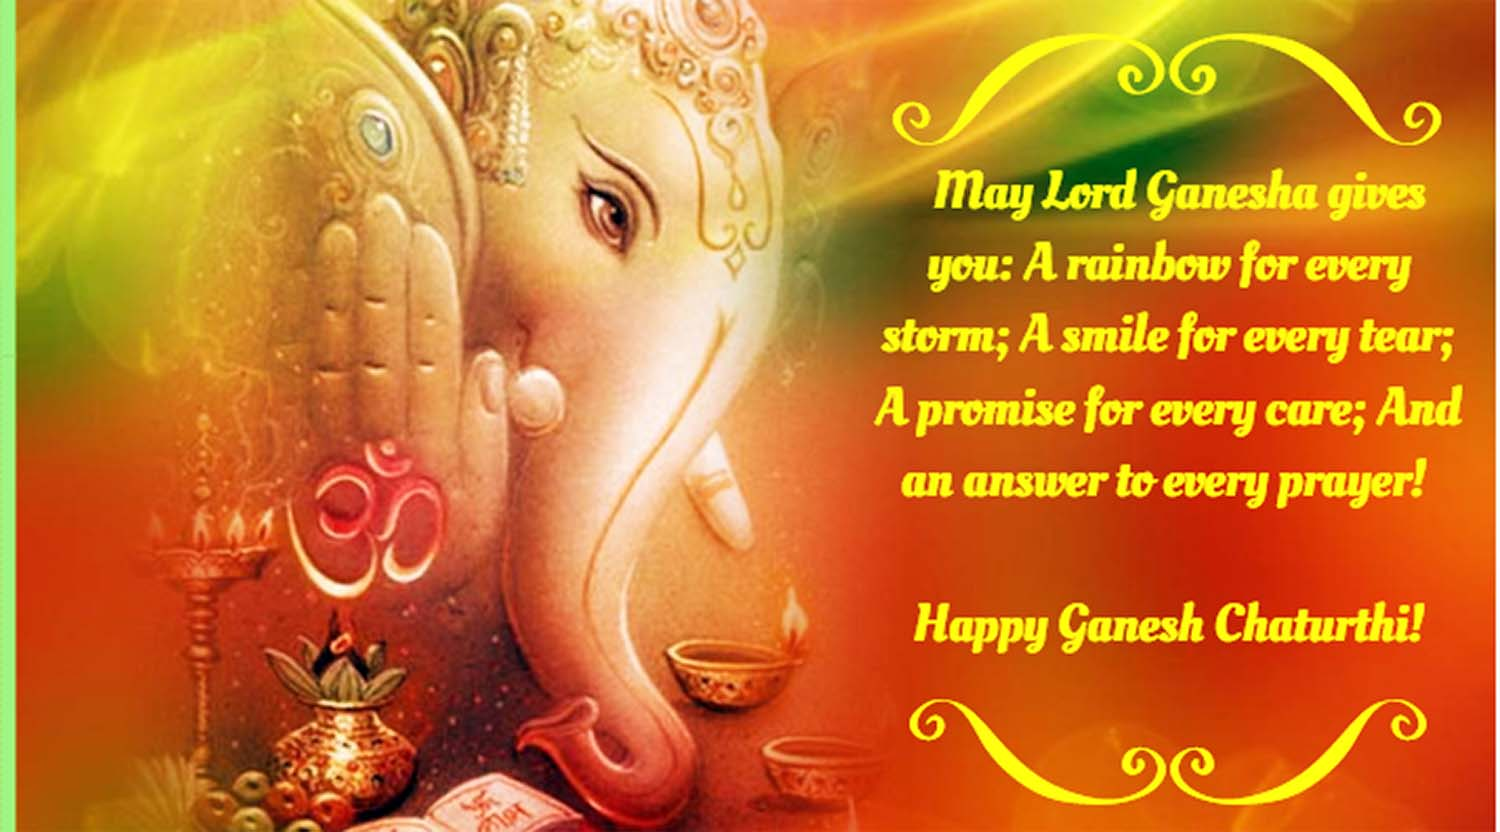 Vinayaka chavithi greetings